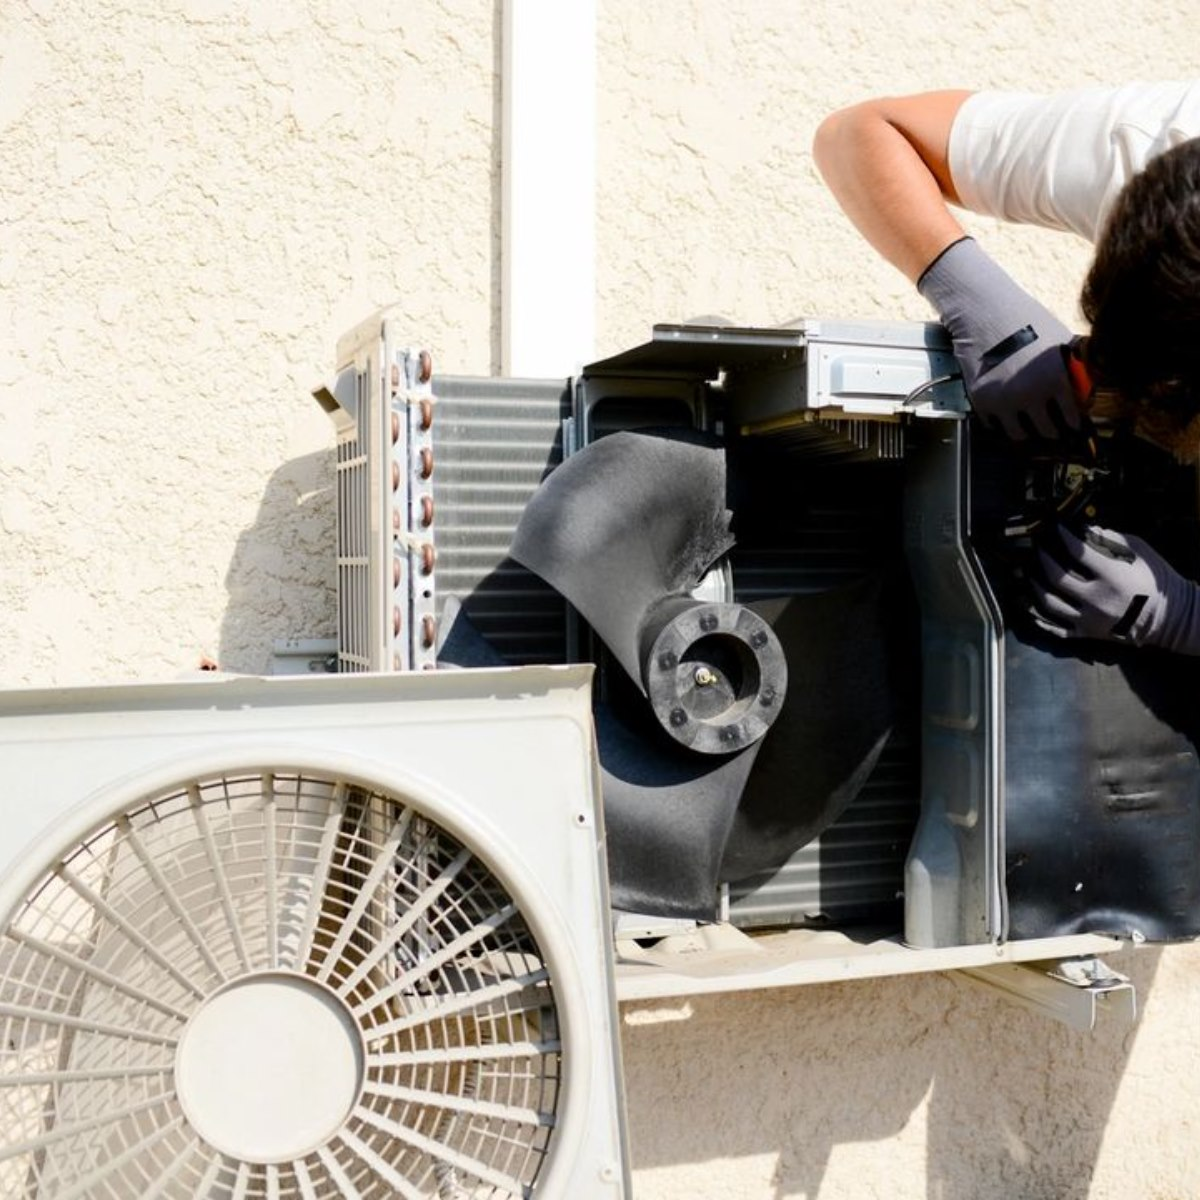 Outdoor ac unit being services